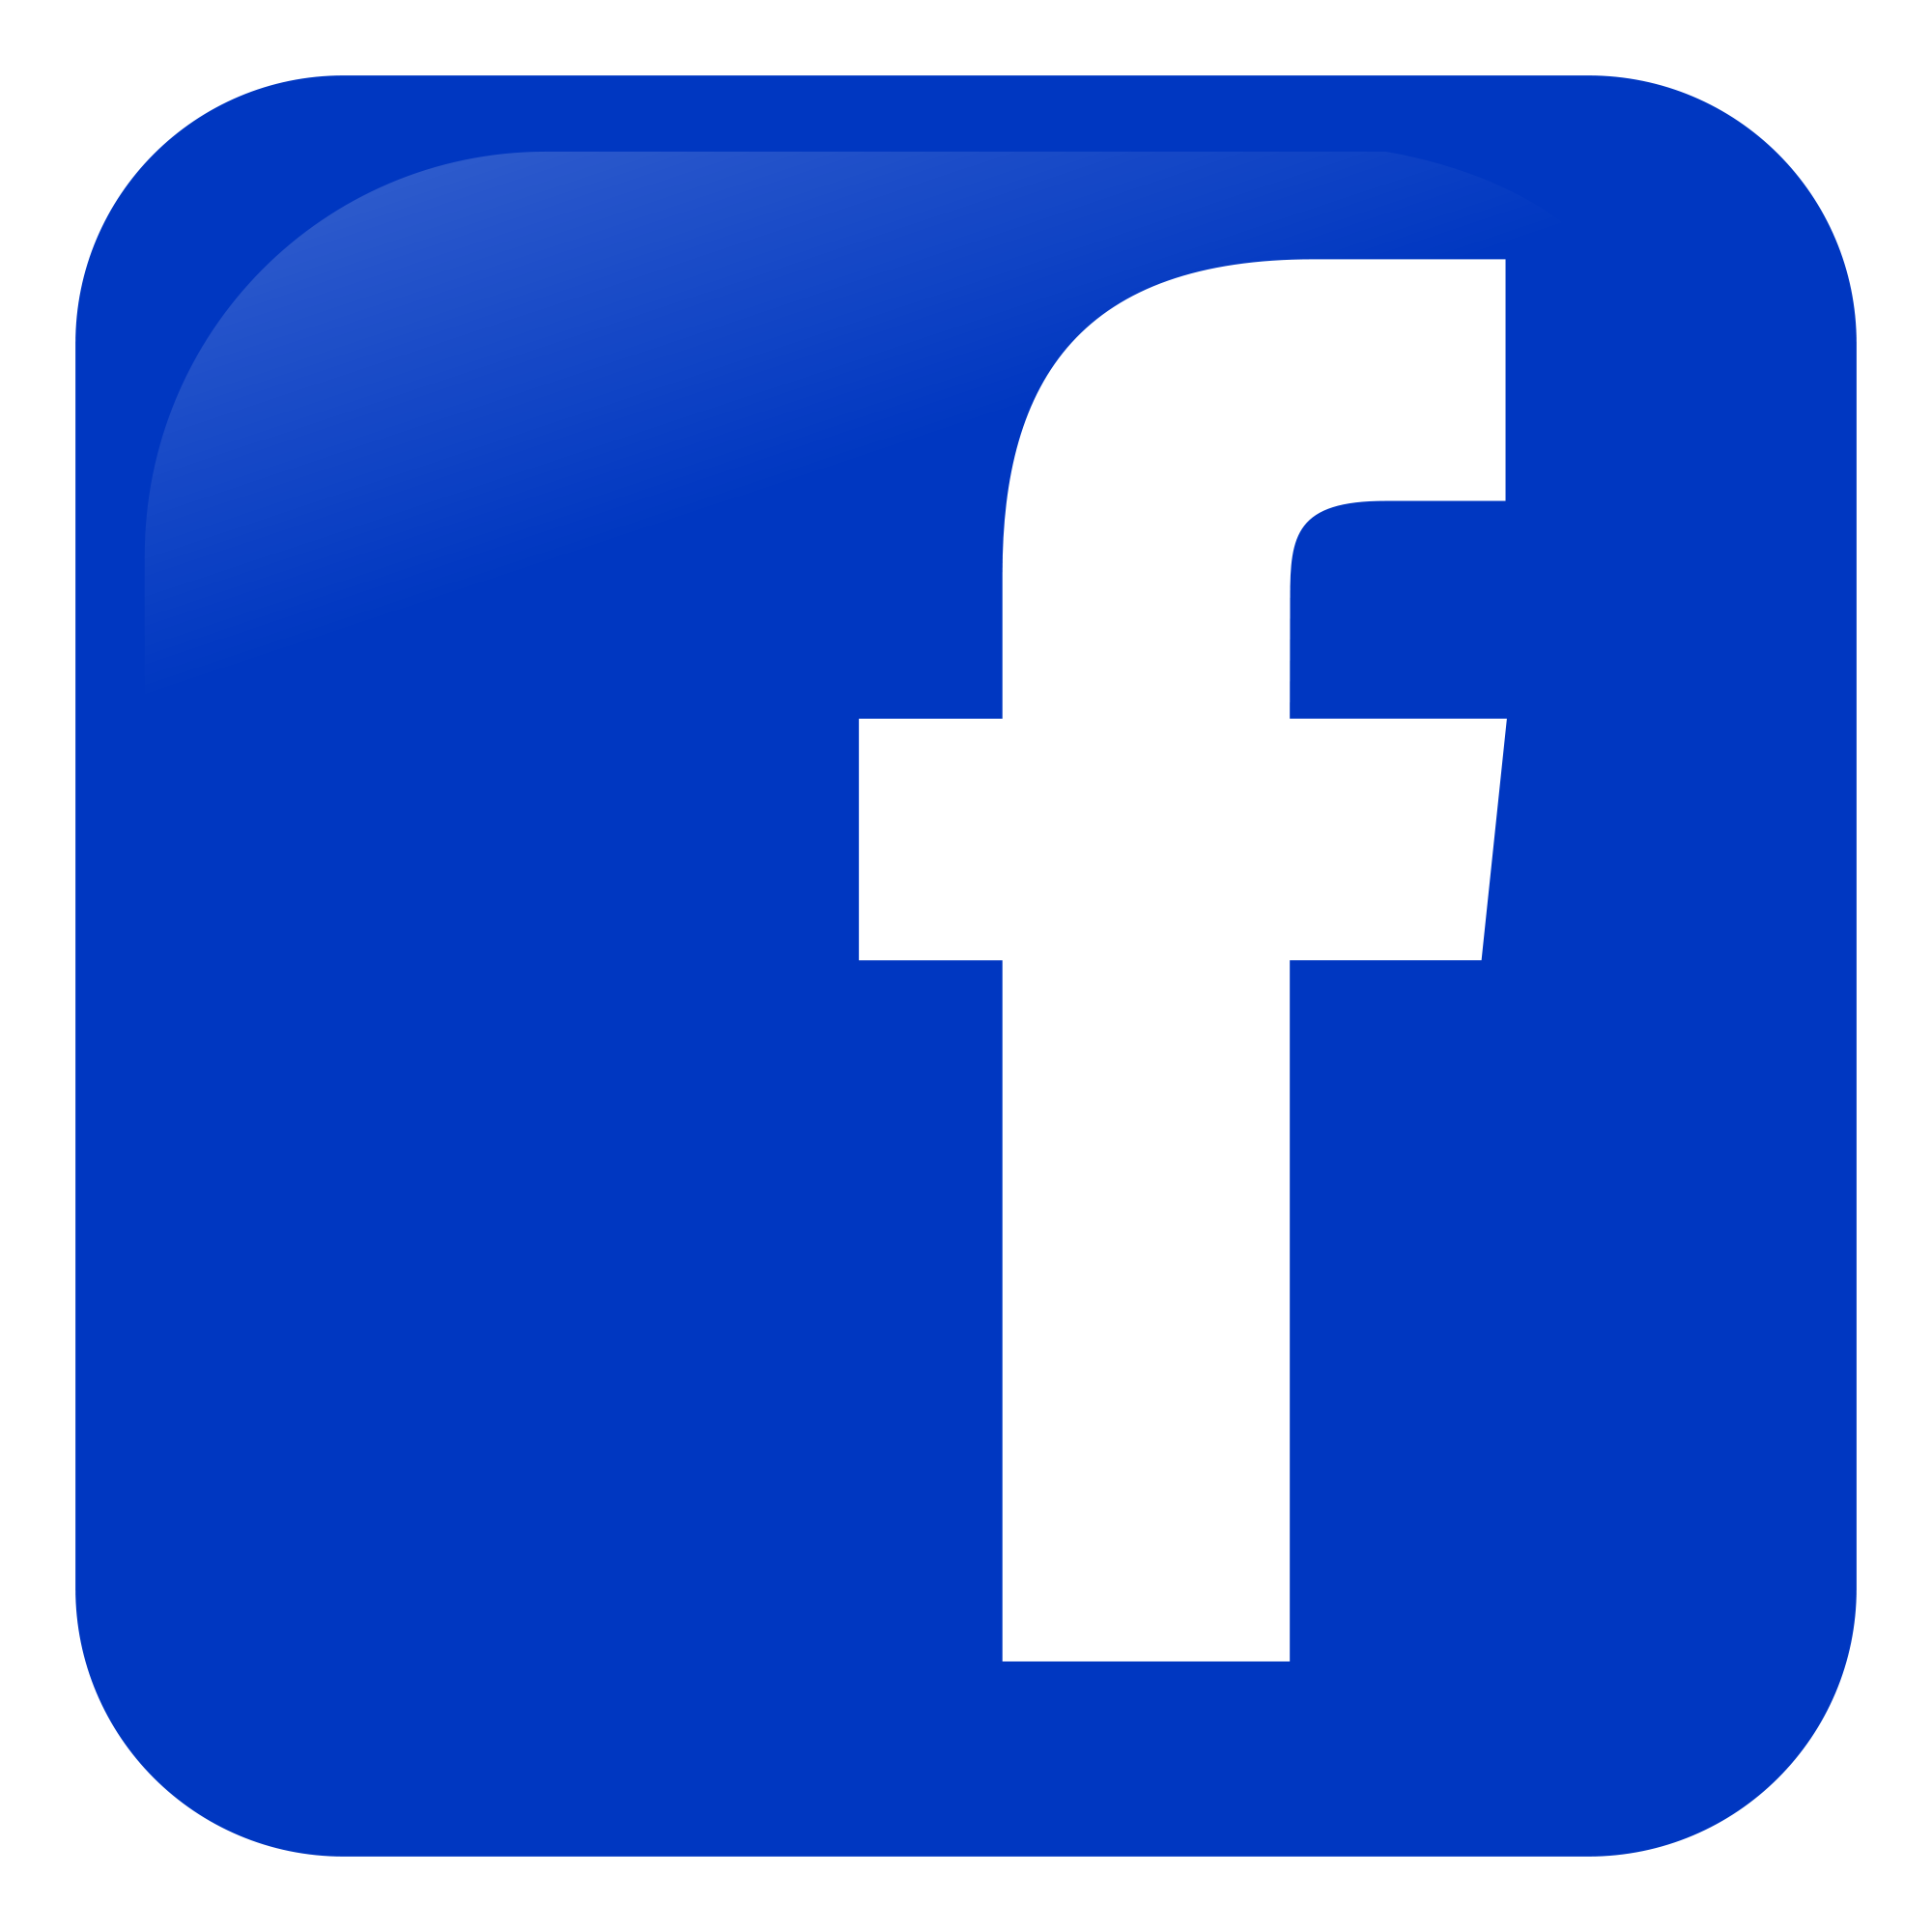 Facebook logos png. Images free download icon